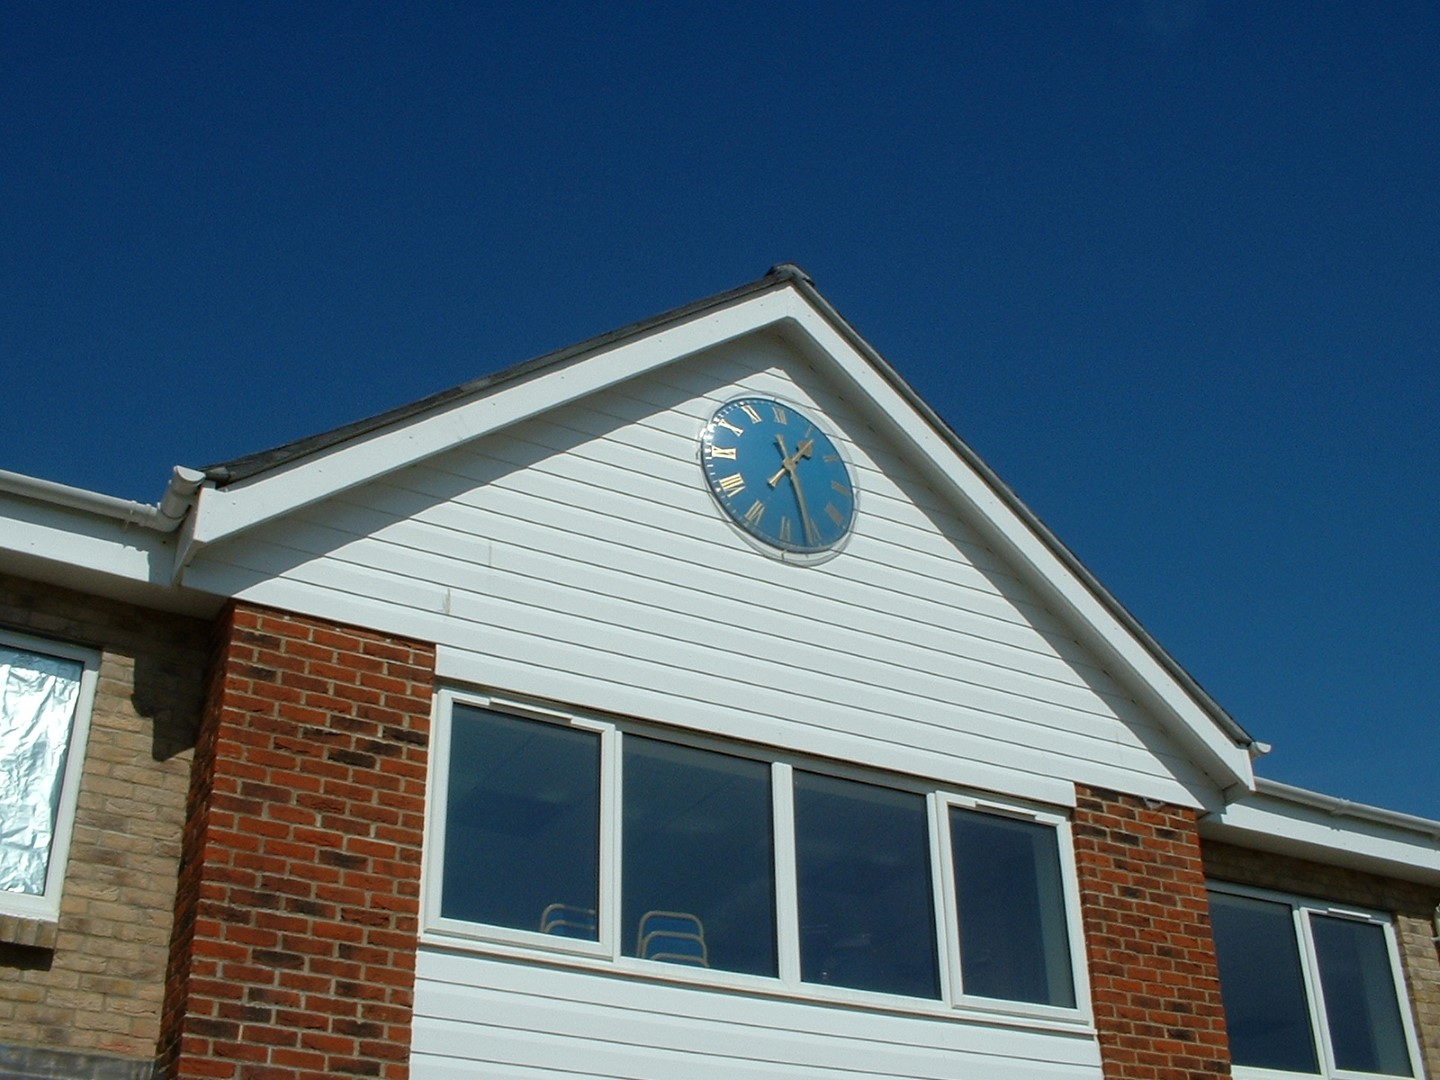 Club House Exterior Clock